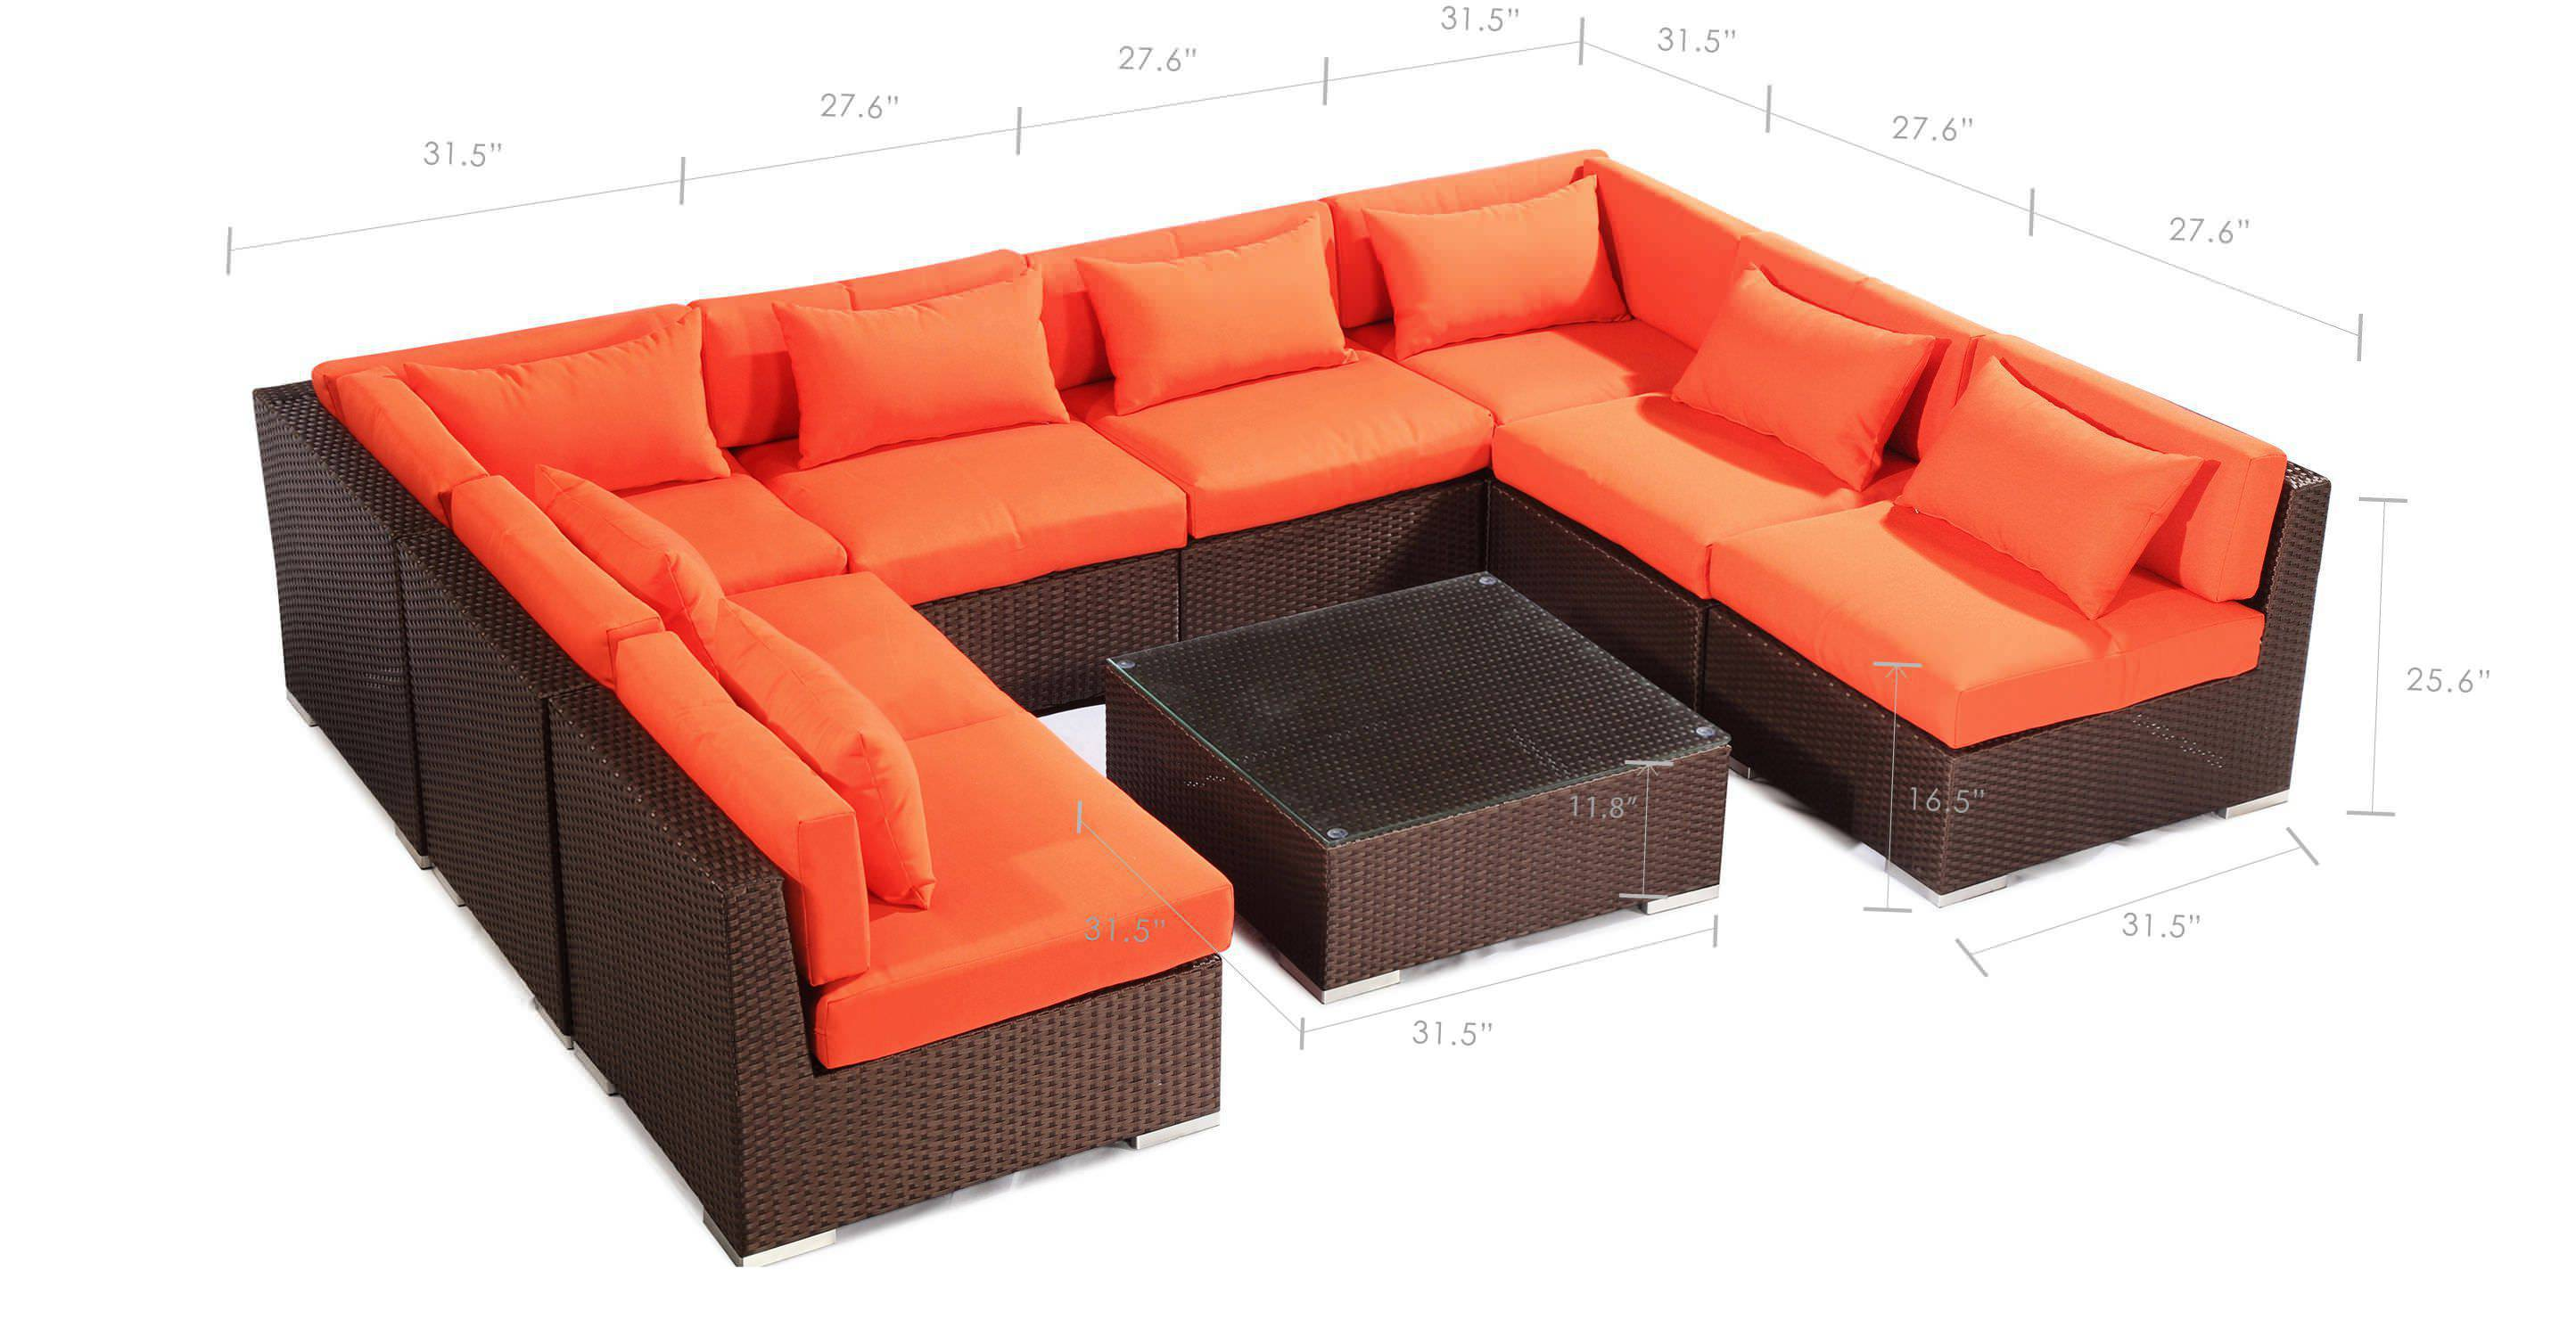 patio furniture oahu 28 images oahu modern outdoor  : drawings oahu9 orange from walldecors.co size 2889 x 1500 jpeg 240kB